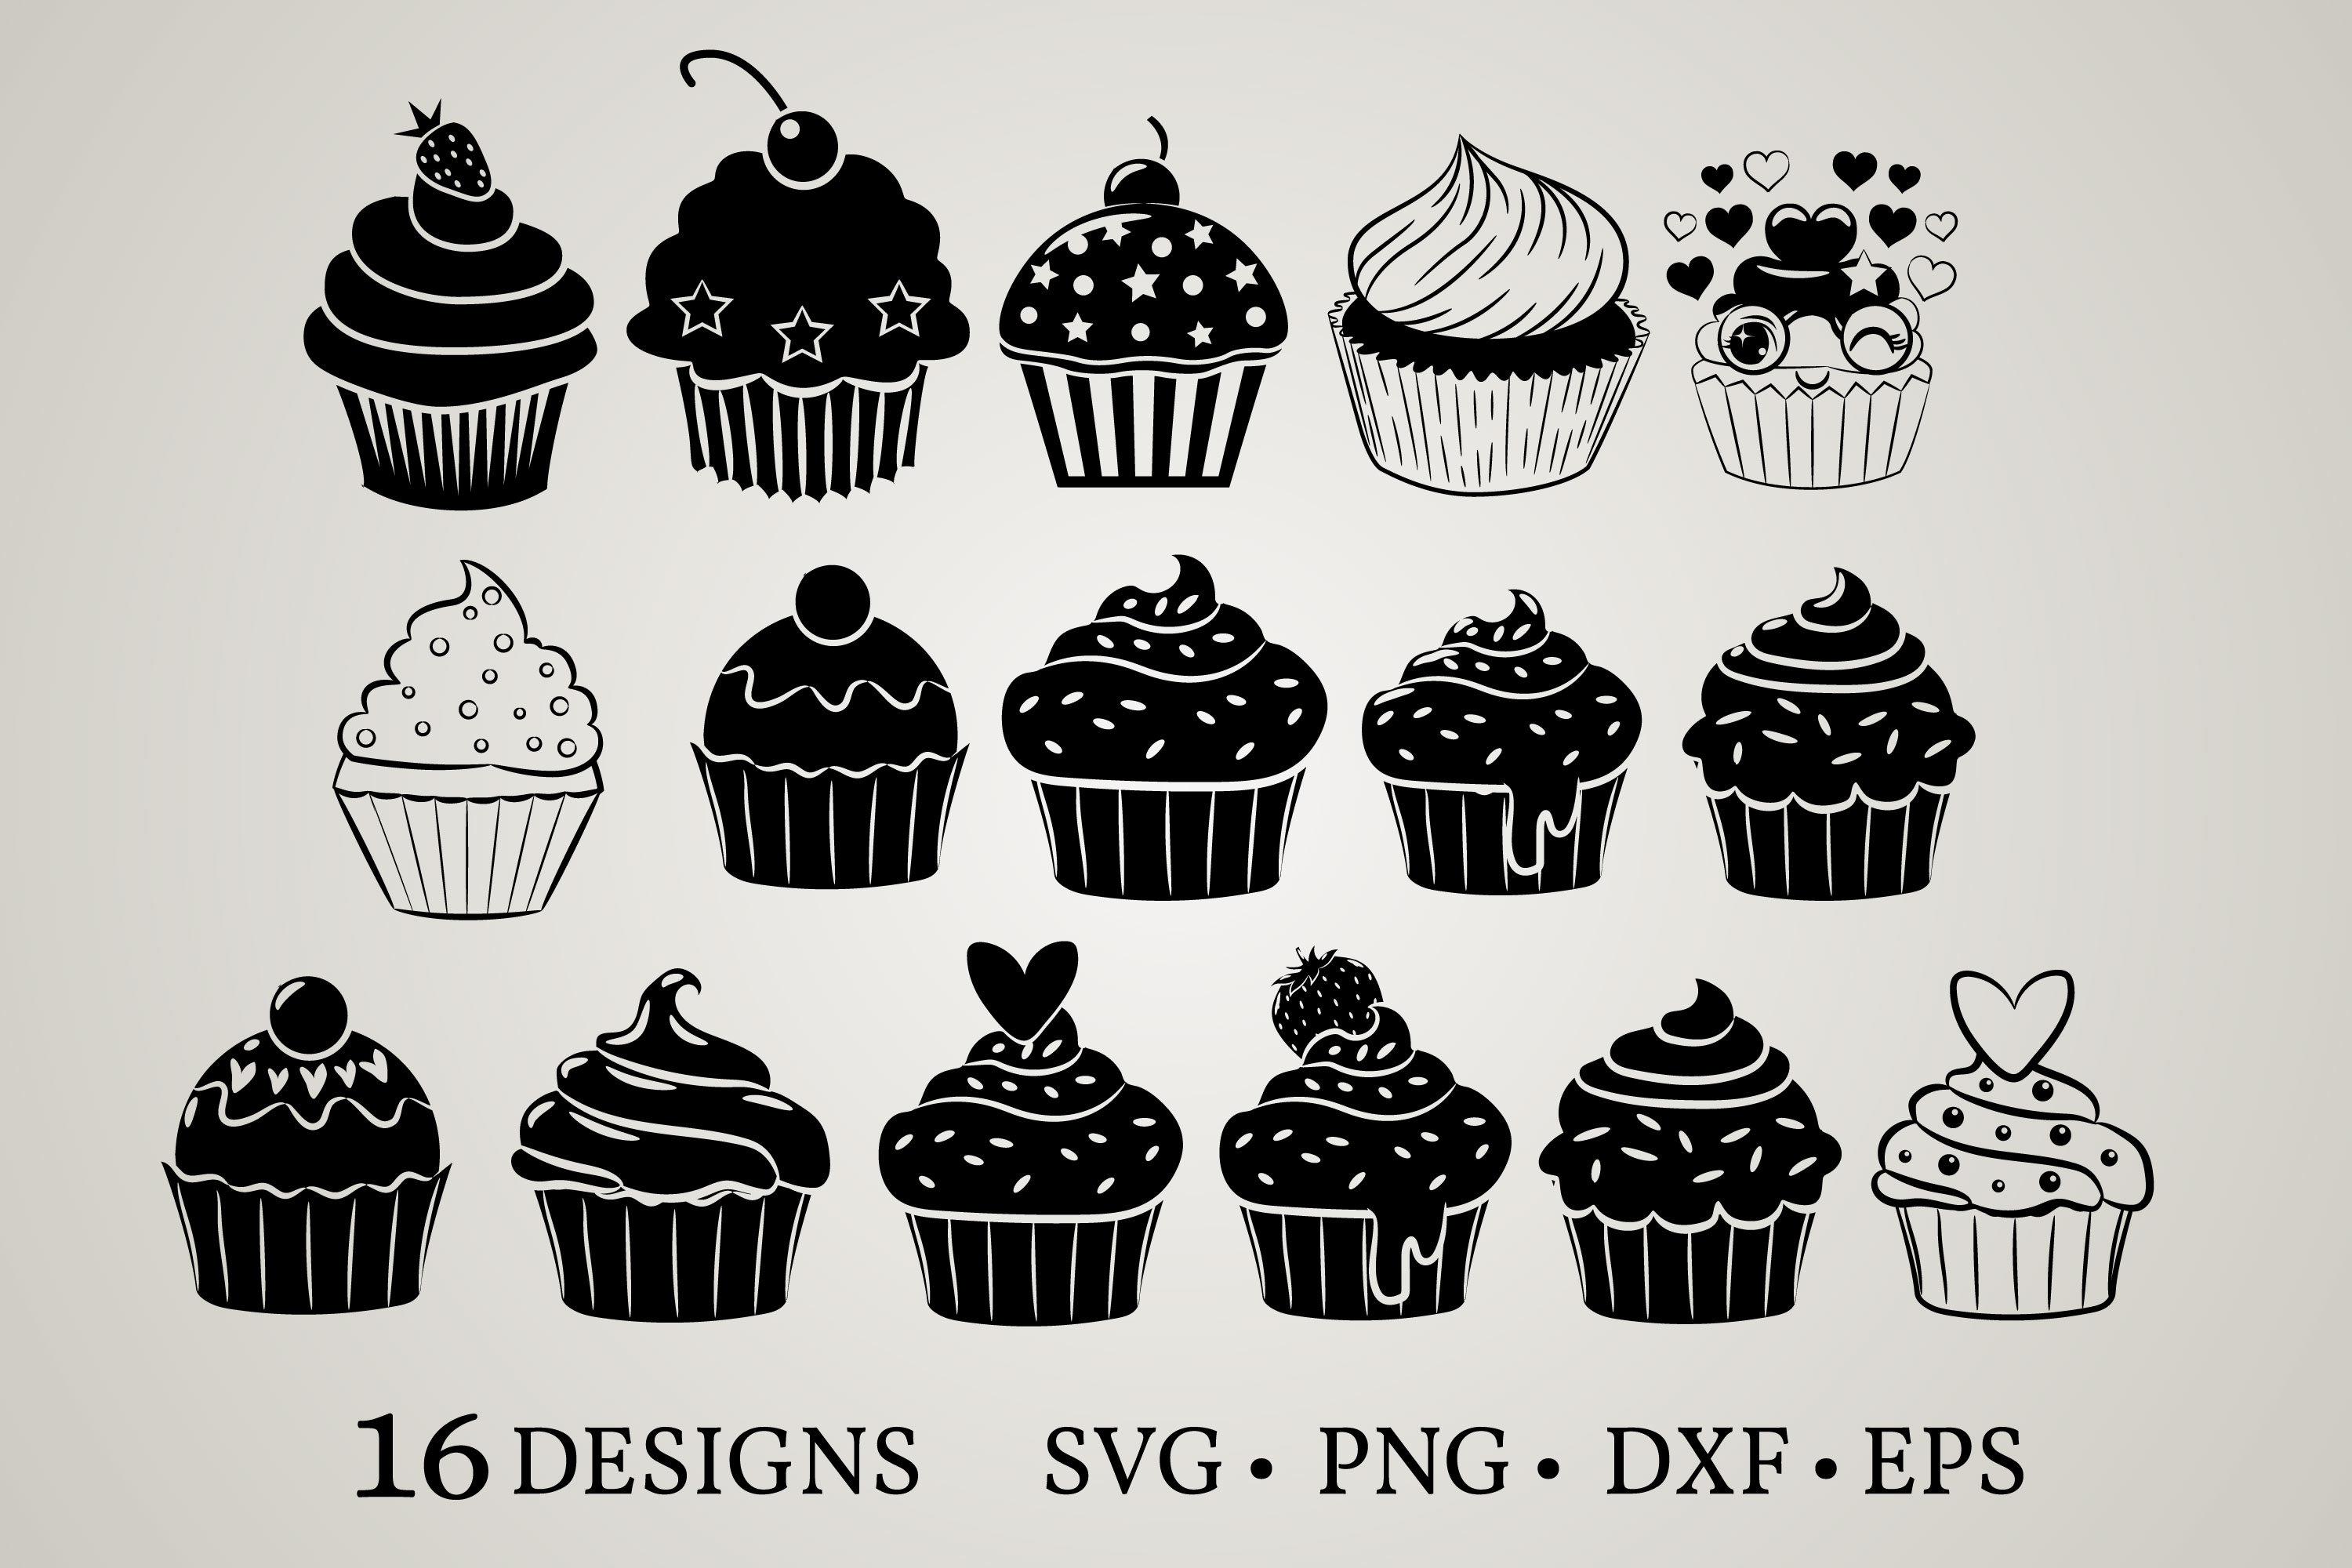 Download Free Cupcake Bundle Graphic By Euphoria Design Creative Fabrica for Cricut Explore, Silhouette and other cutting machines.